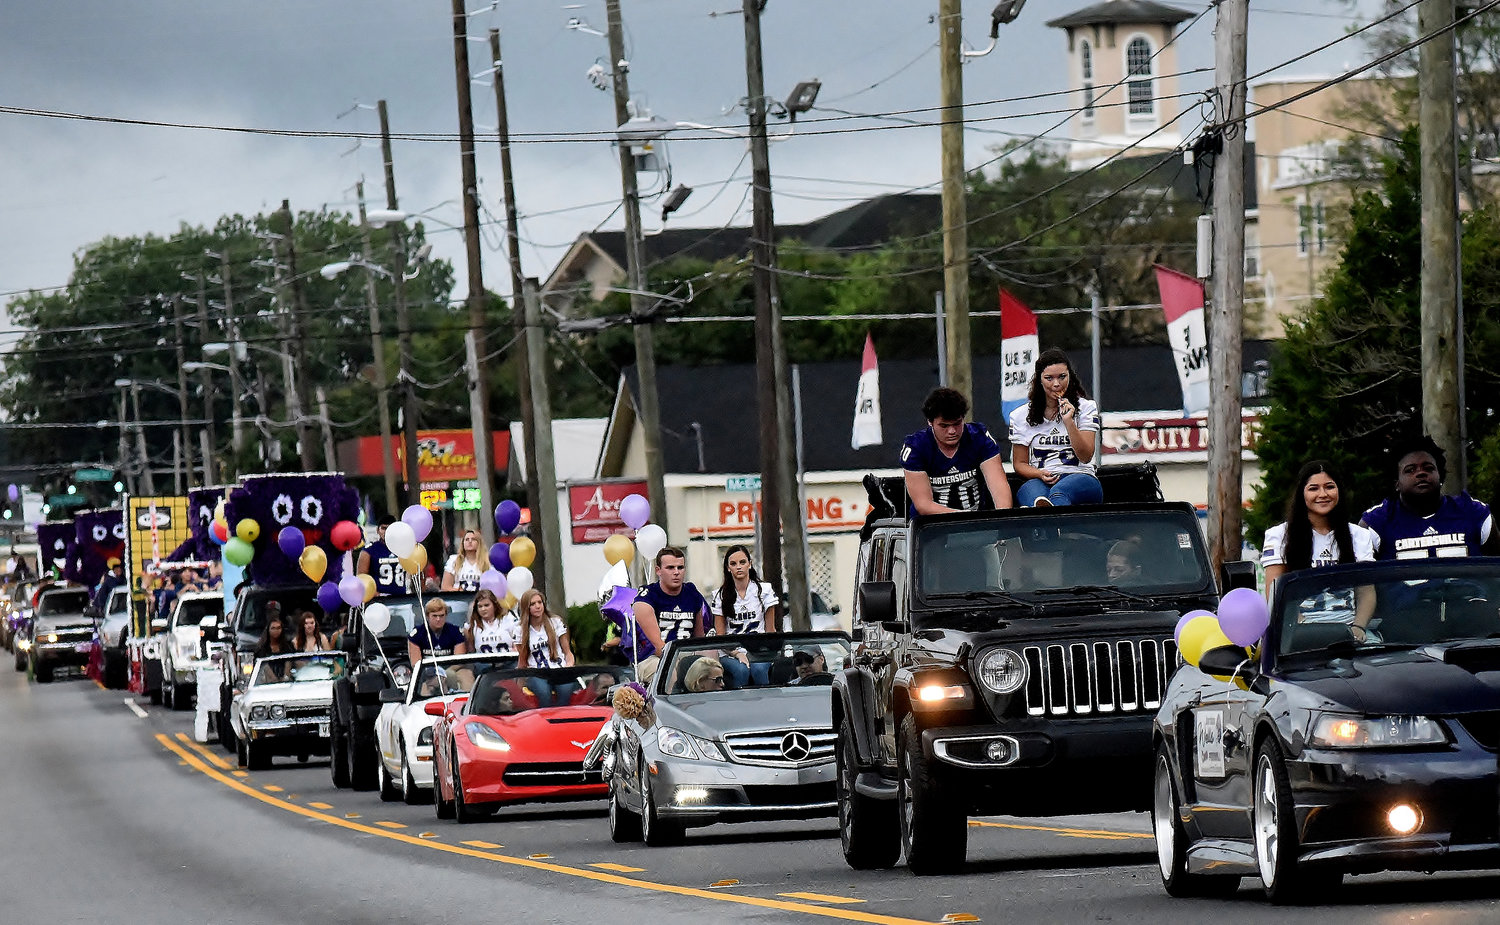 The 2018 Cartersville High School homecoming parade makes its way up Tennessee Street Thursday afternoon. Tonight's homecoming game features the Canes against Central-Carroll at 7:30 at Weinman Stadium.